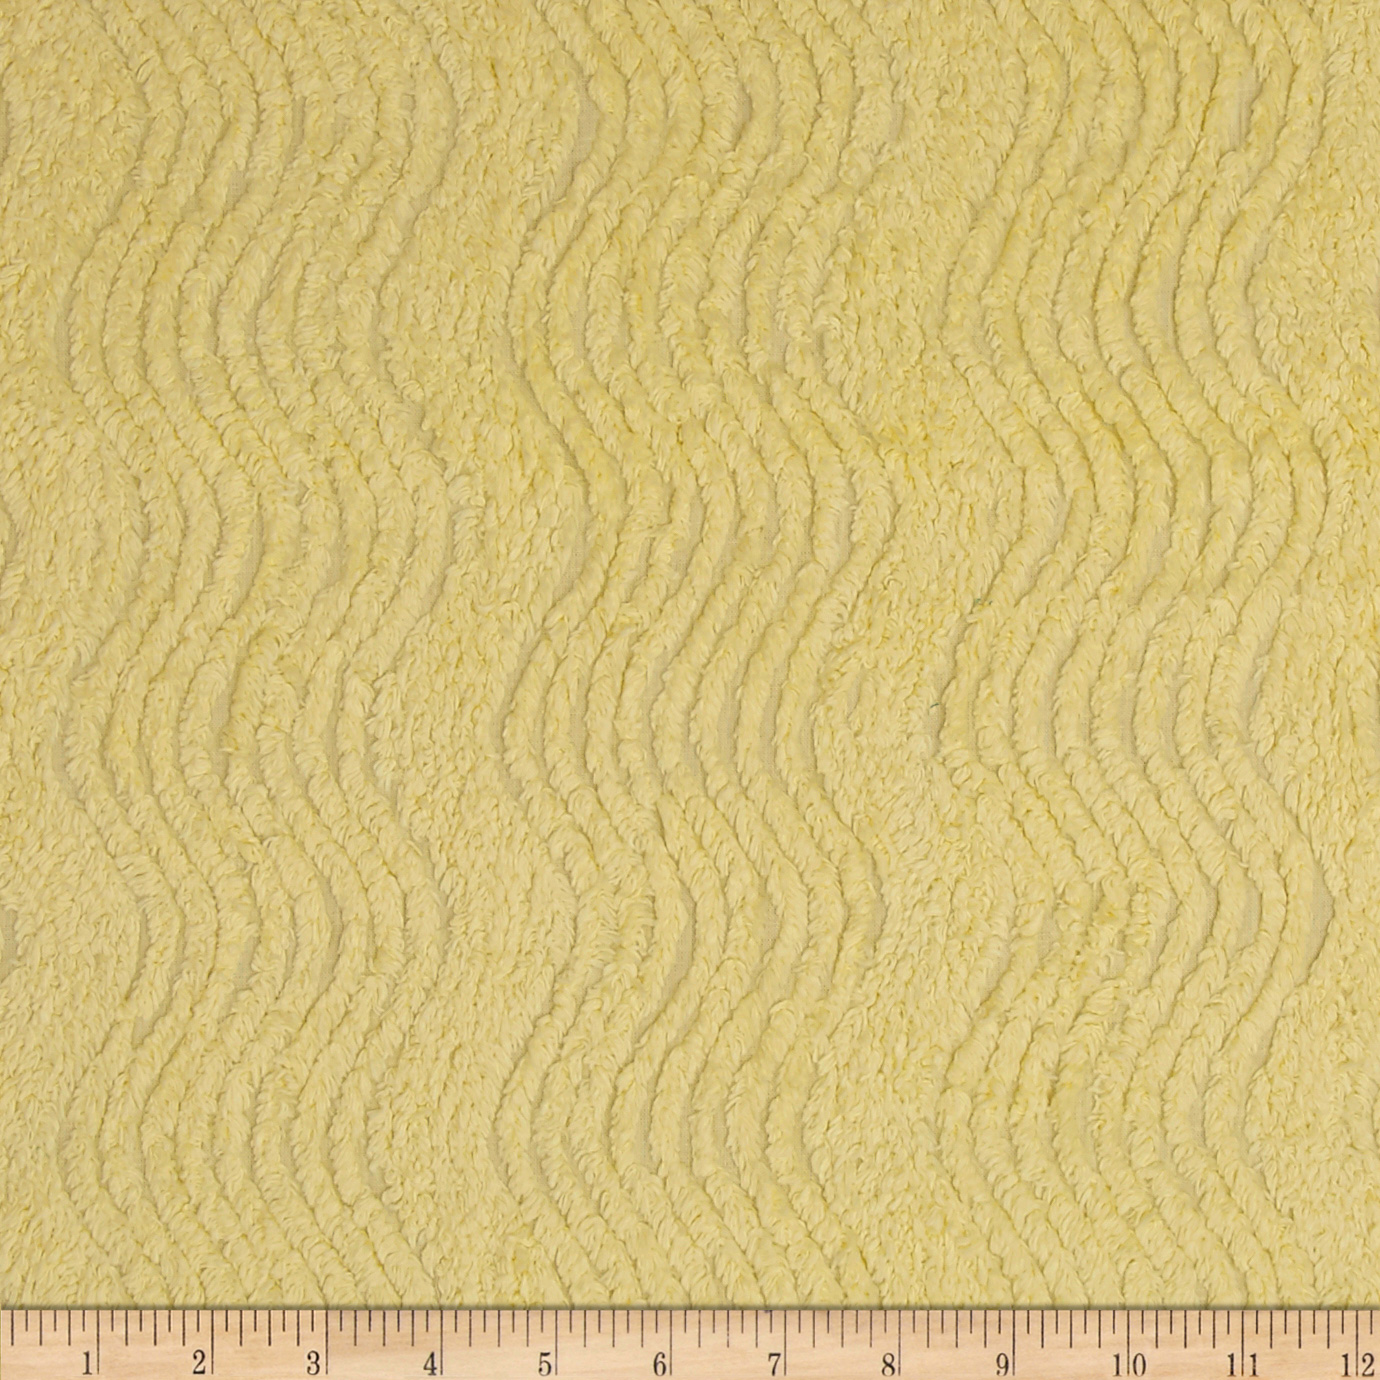 Richlin 10 Ounce Wavy Chenille Yellow Fabric